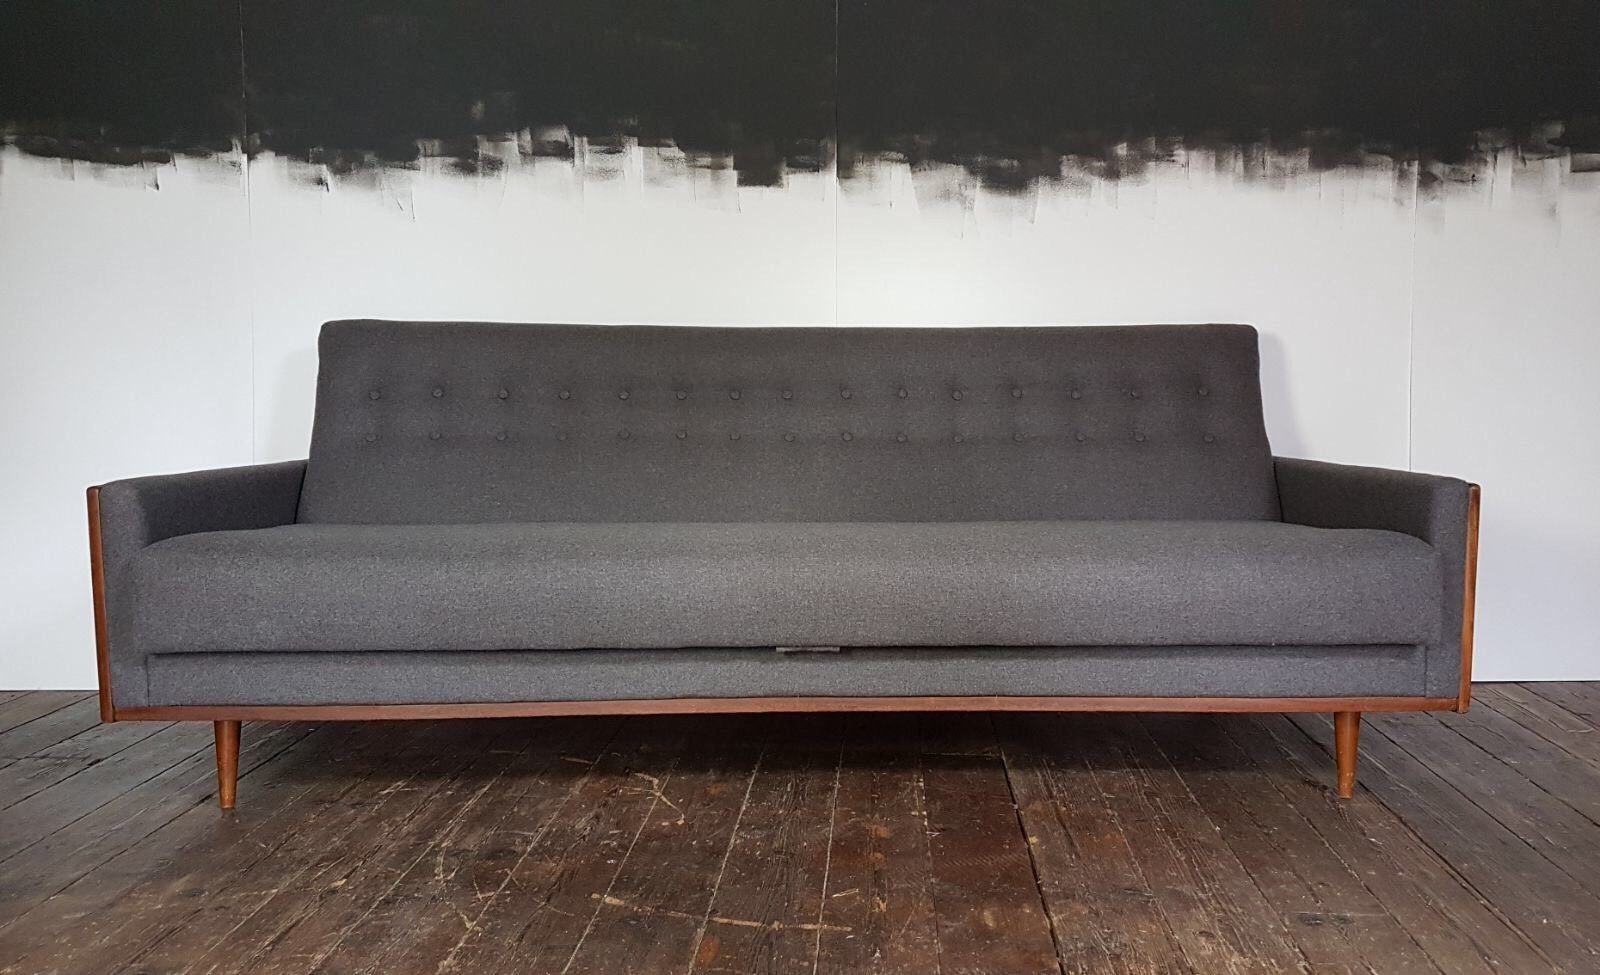 Mid Century American Teak Sofa In Grey Wool From G Plan/E. Gomme